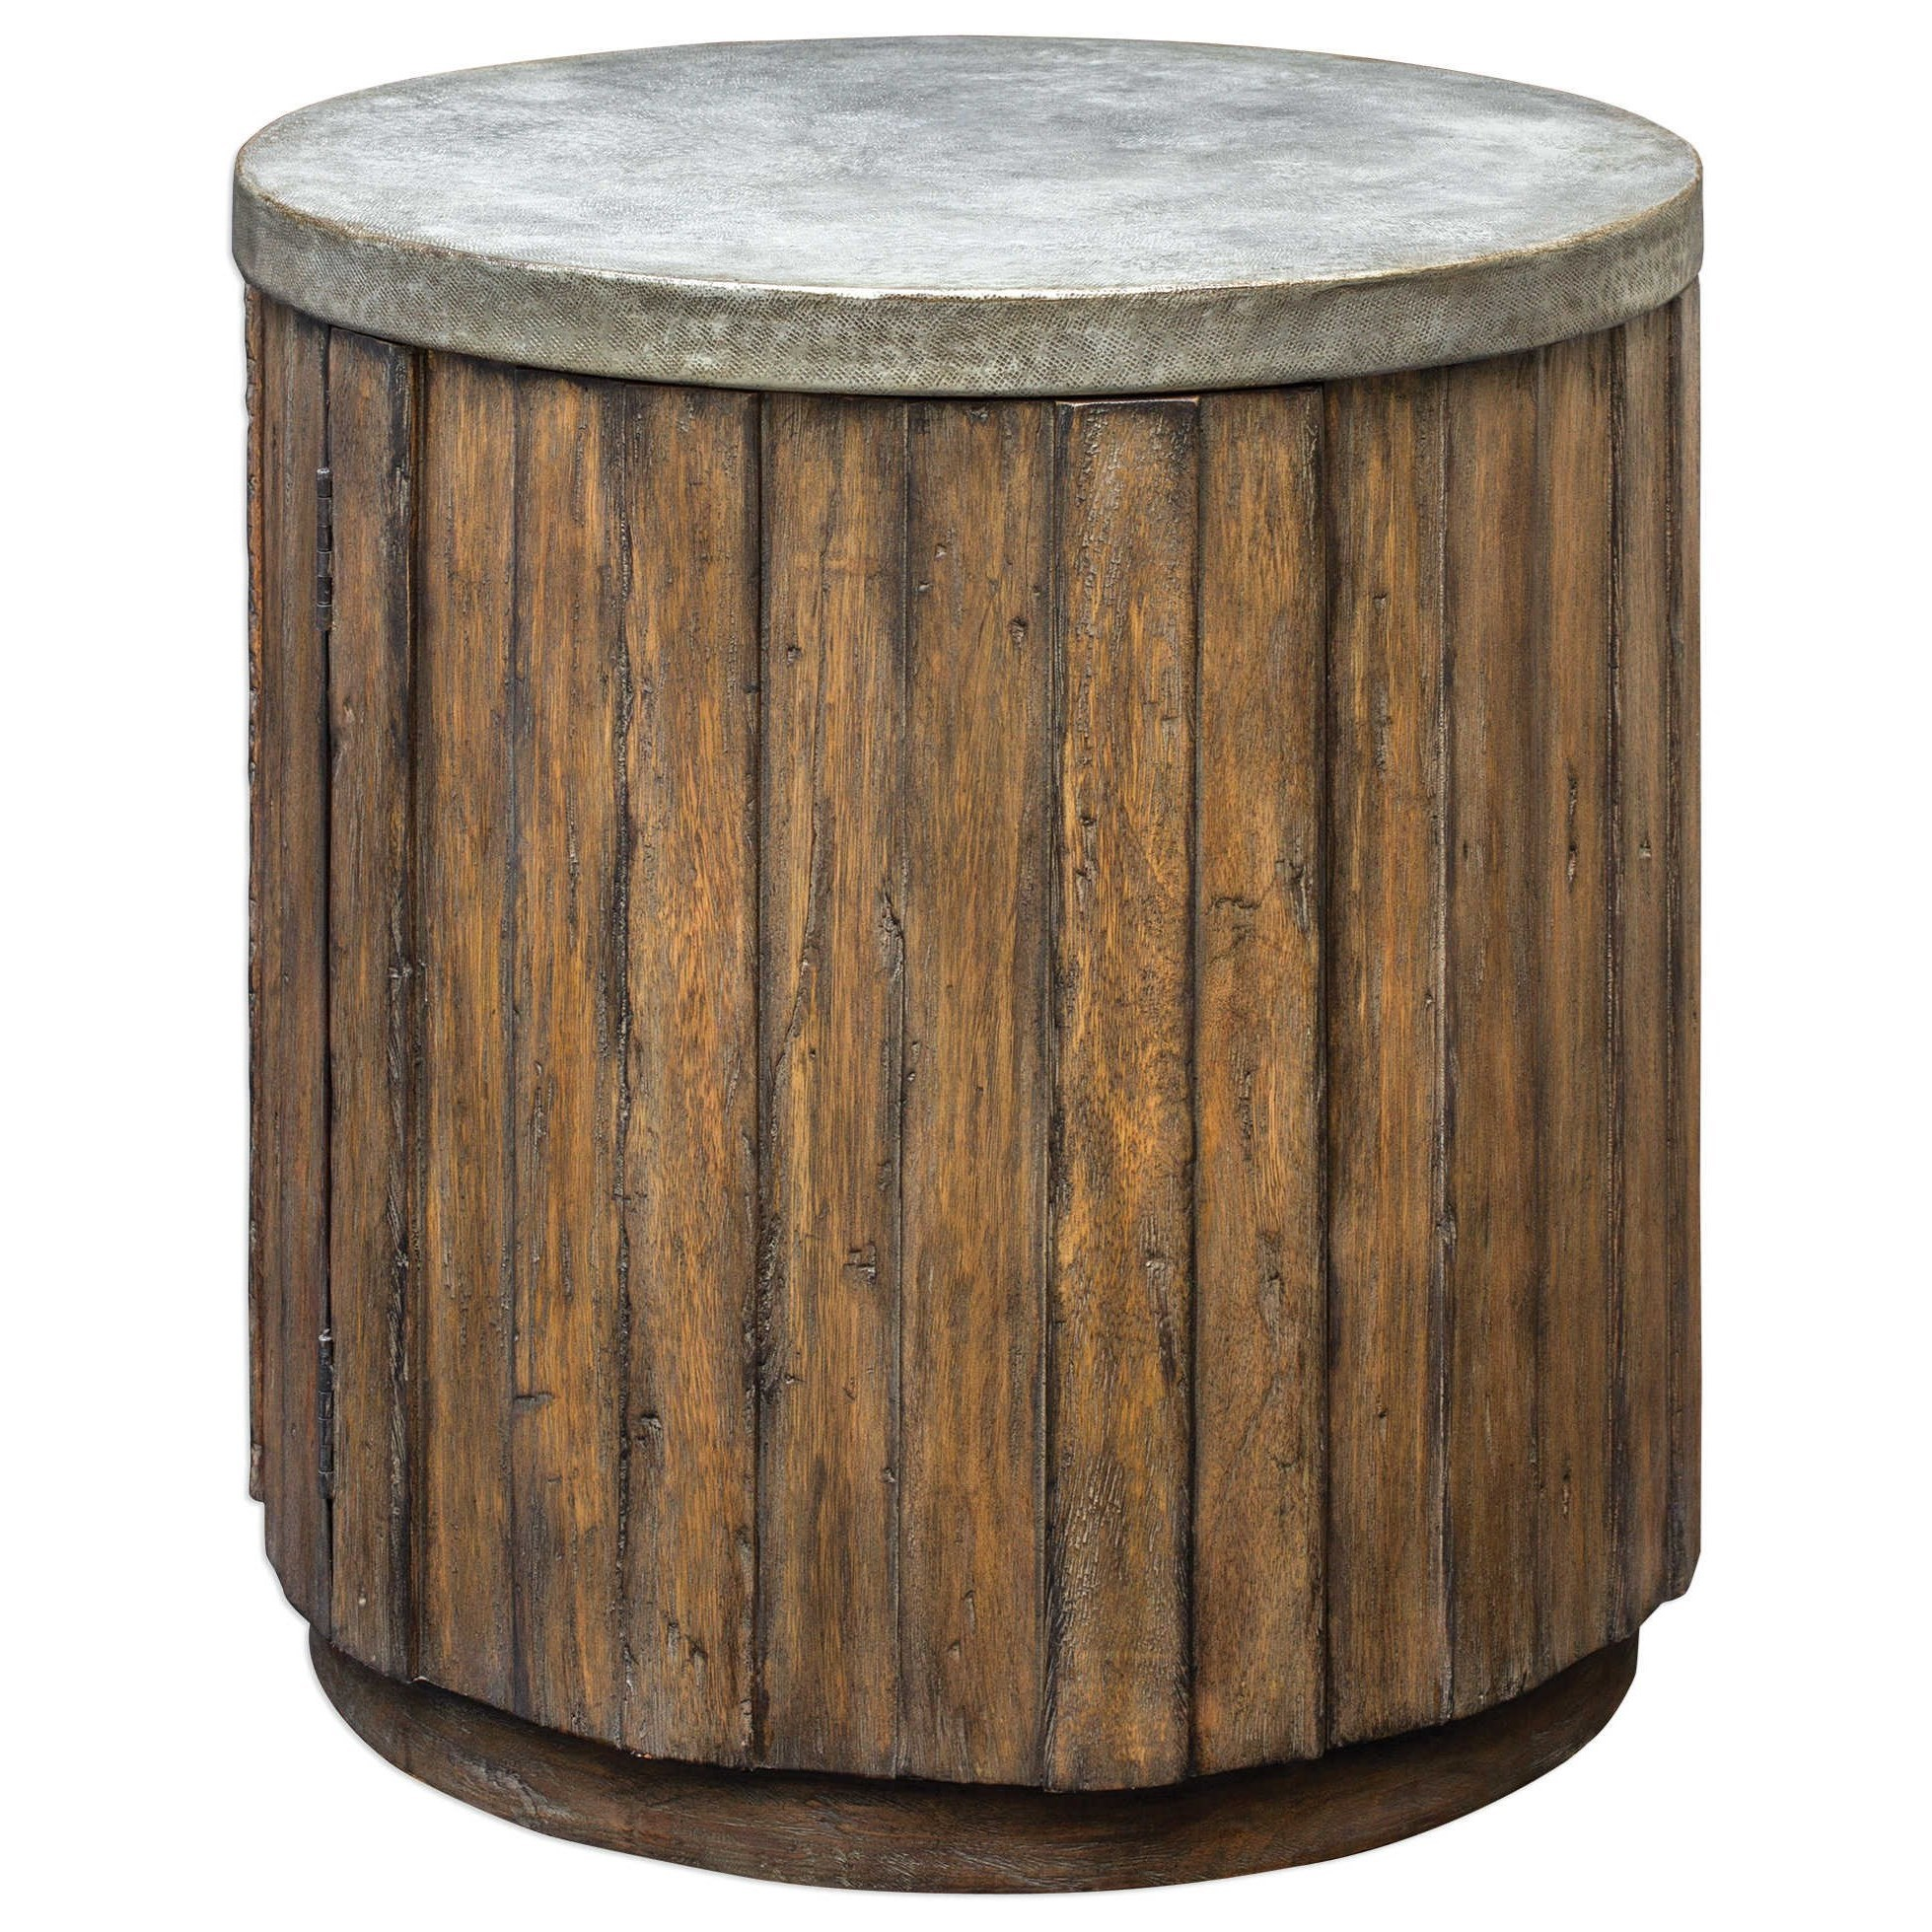 uttermost accent furniture occasional tables maxfield wooden products color outdoor drum table skinny bedside unfinished wood nightstand black cube end drop leaf side mirror